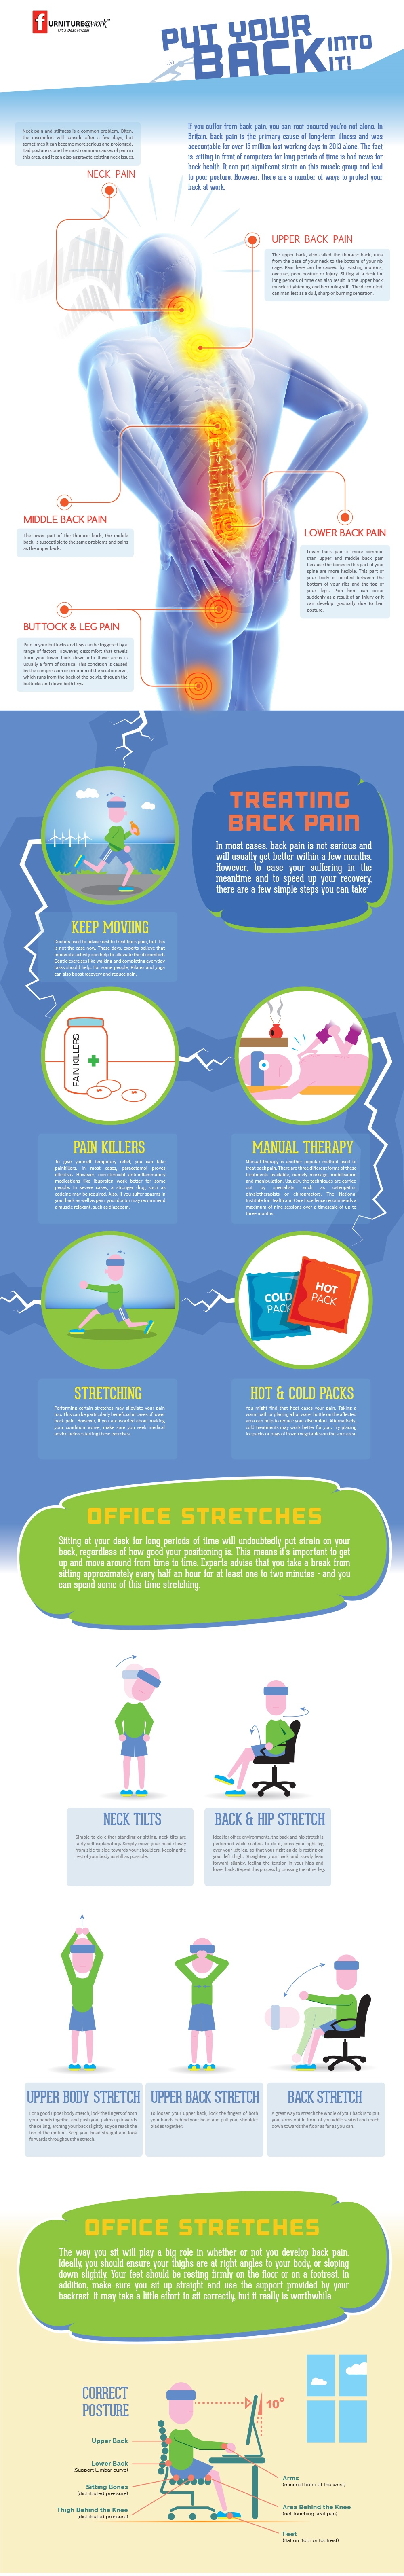 How To Deal With Back Pain - Infographic